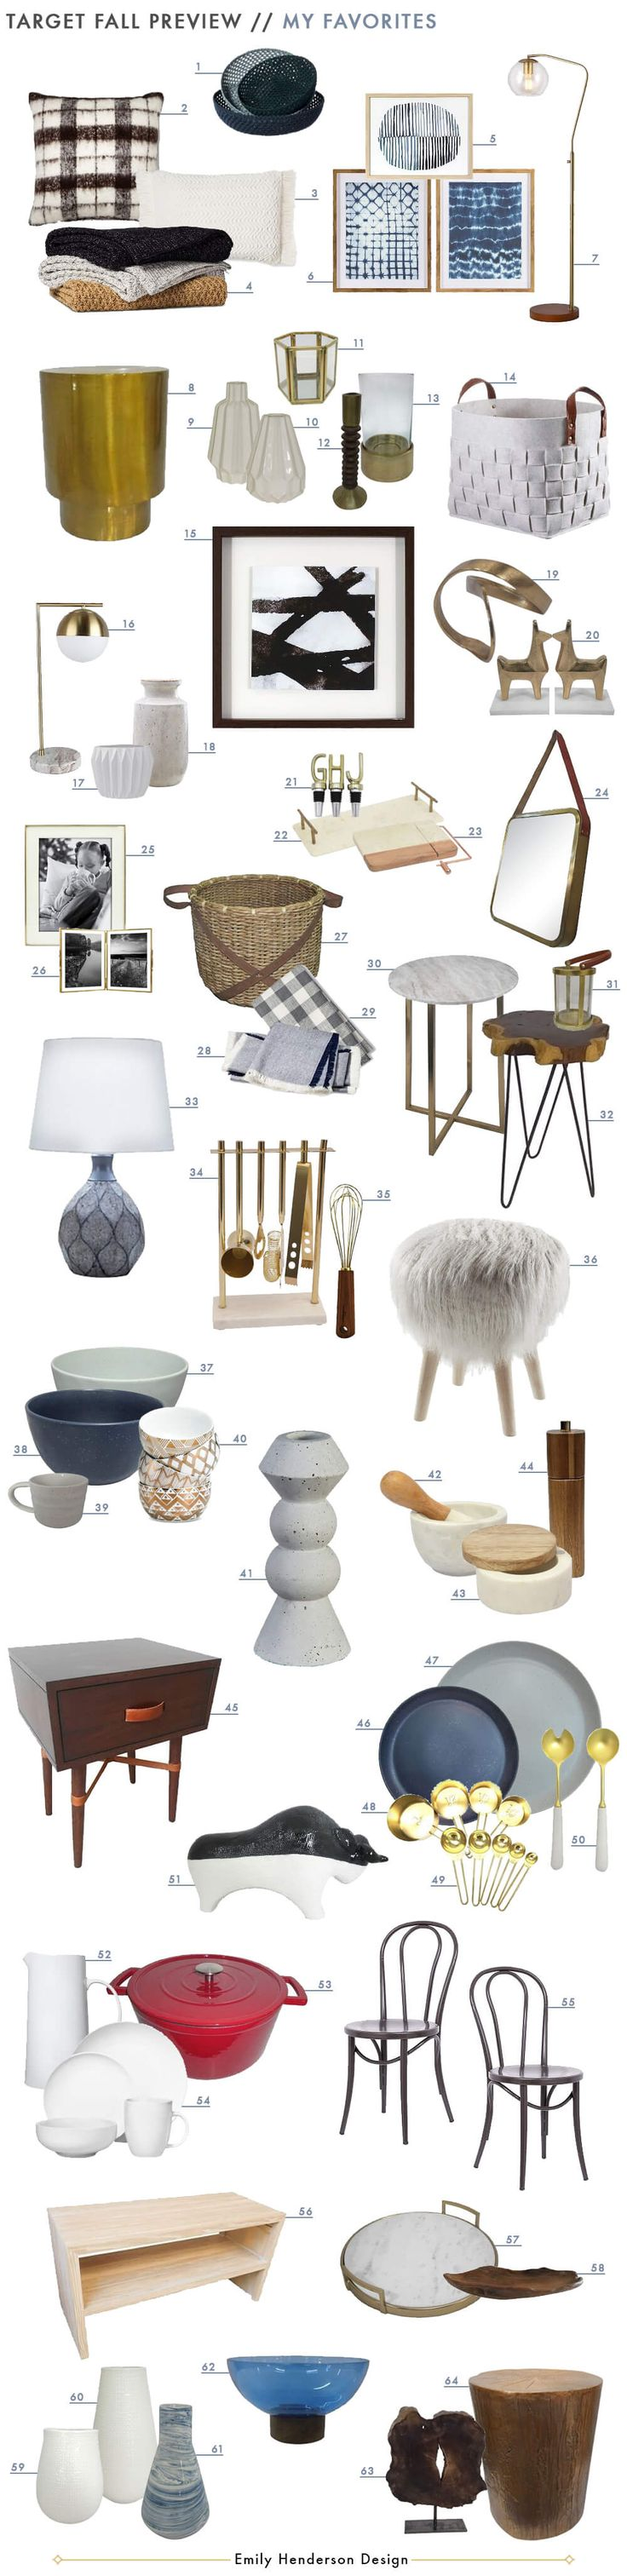 The New Target Fall Style Collection - so many great things; I need to stock up on all those vases